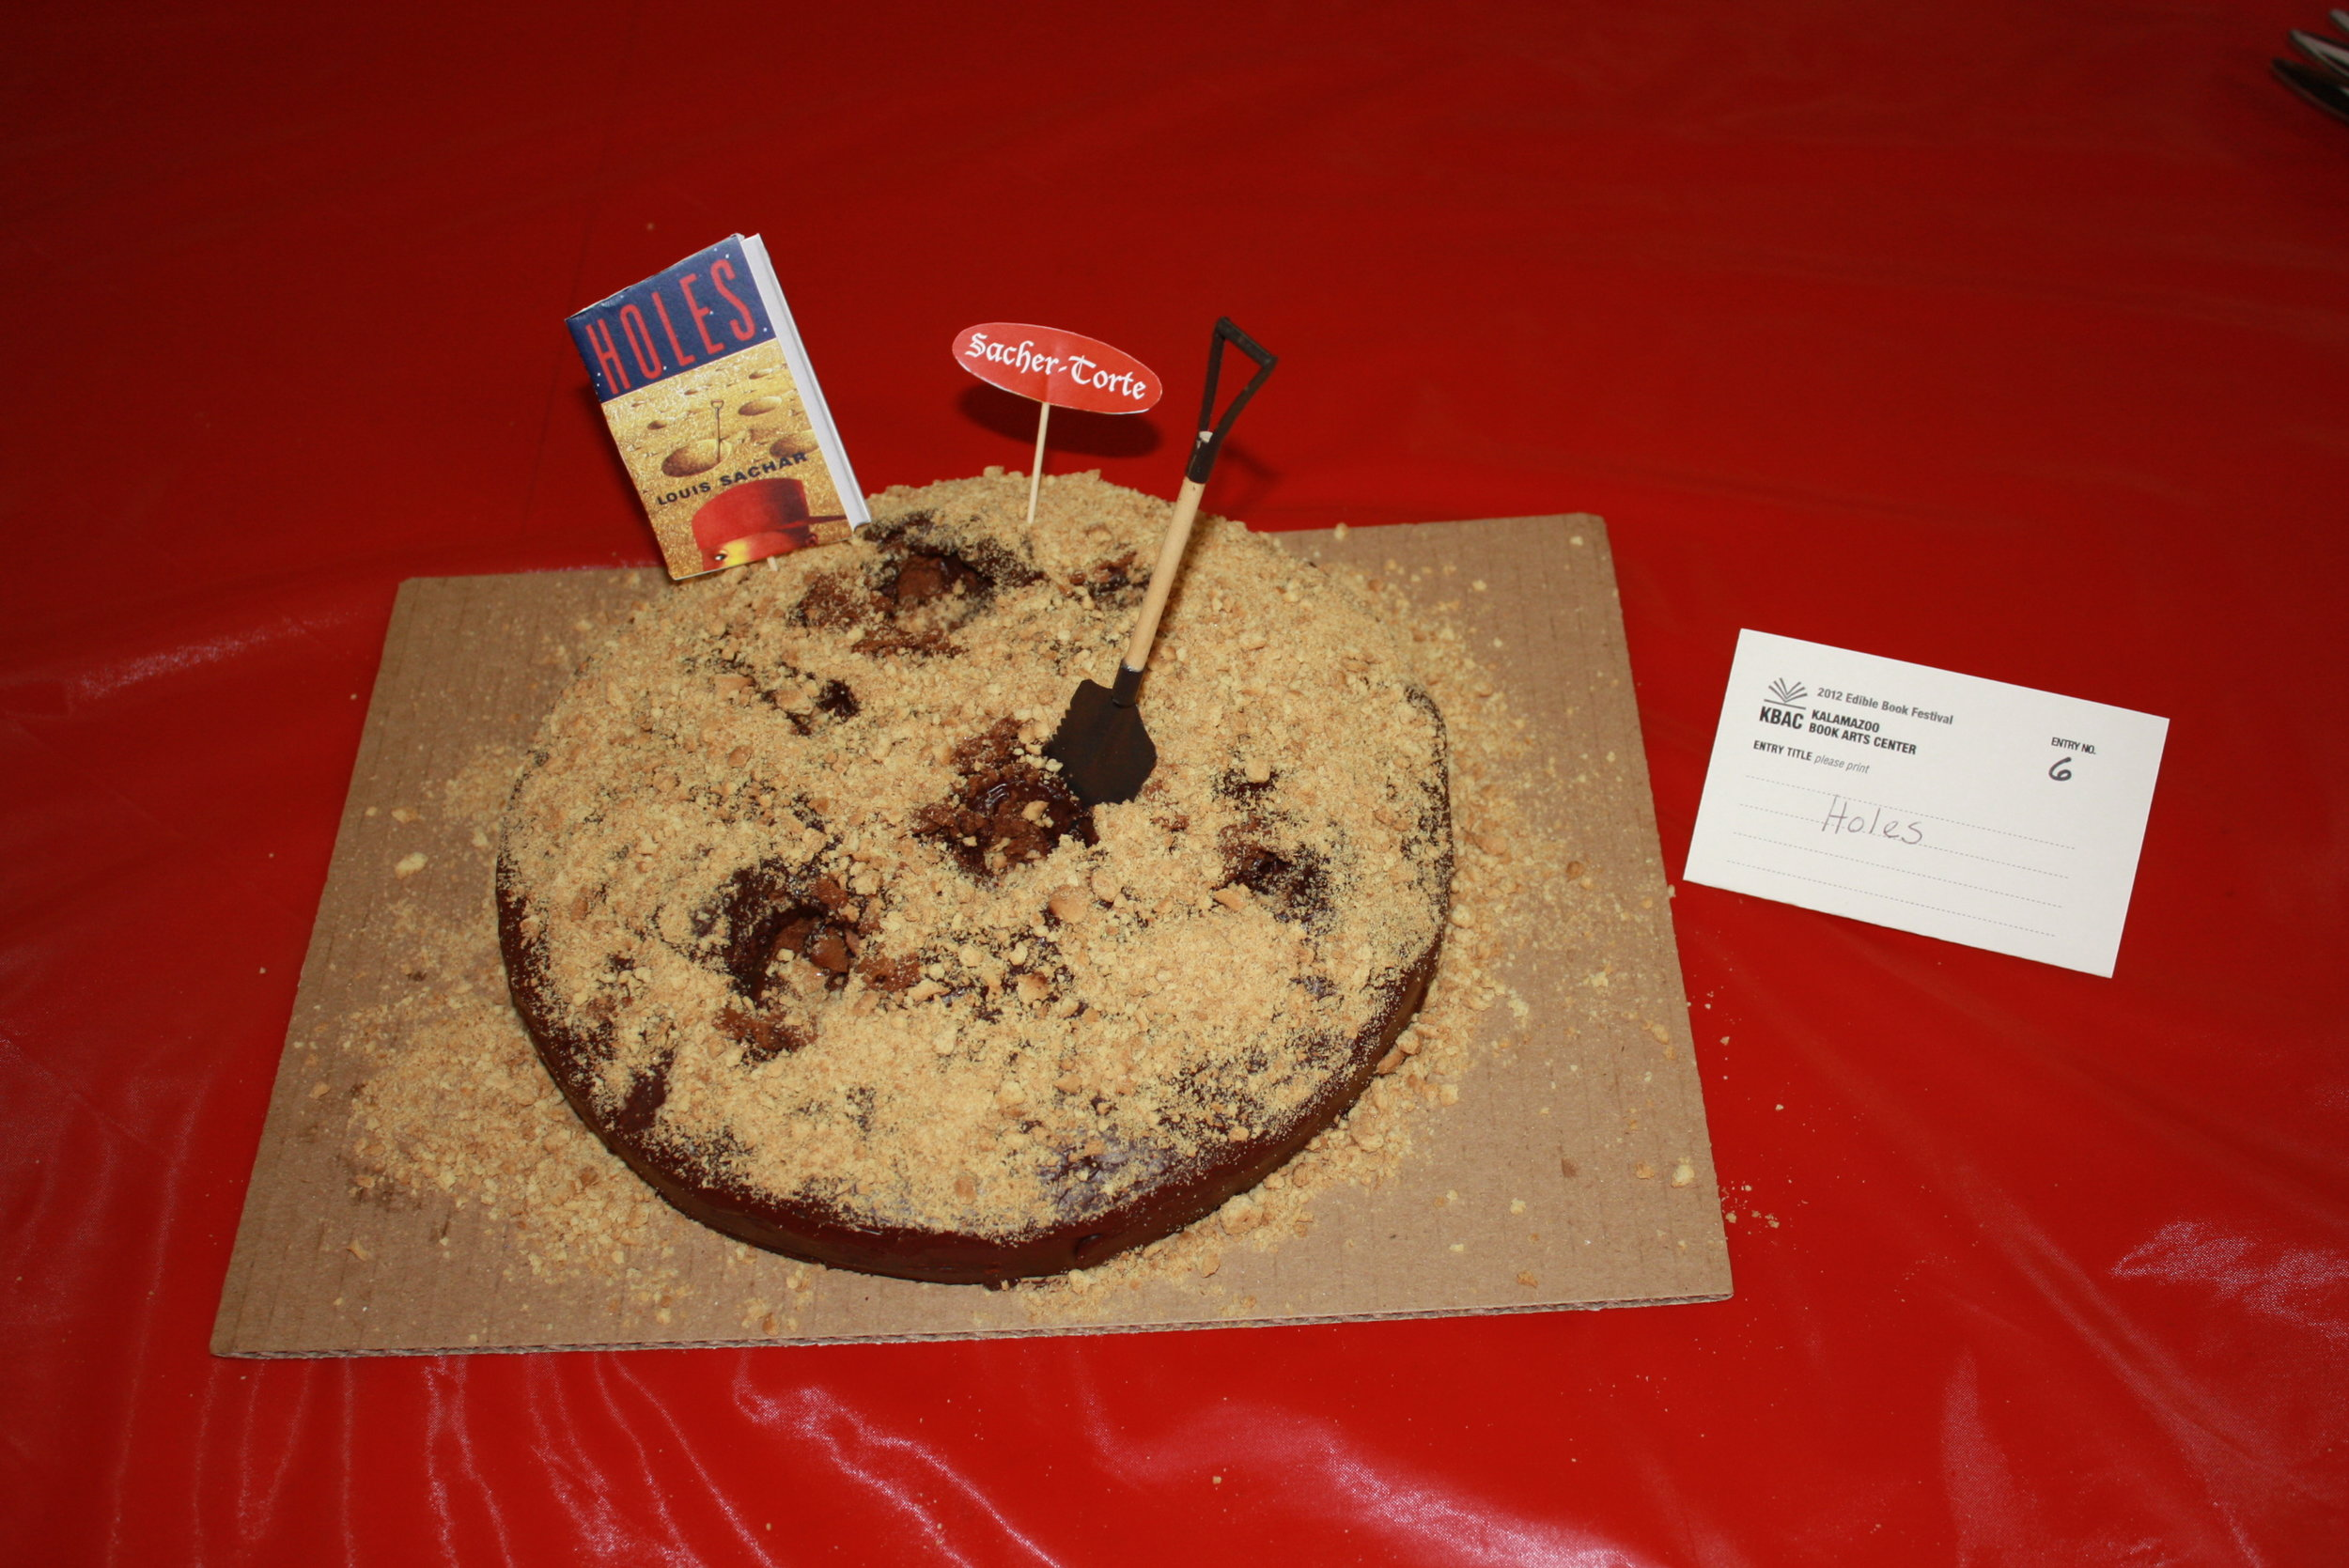 """""""Holes,"""" by Louis Sachar, created by Jamie Bynum, Edible Book 2012."""